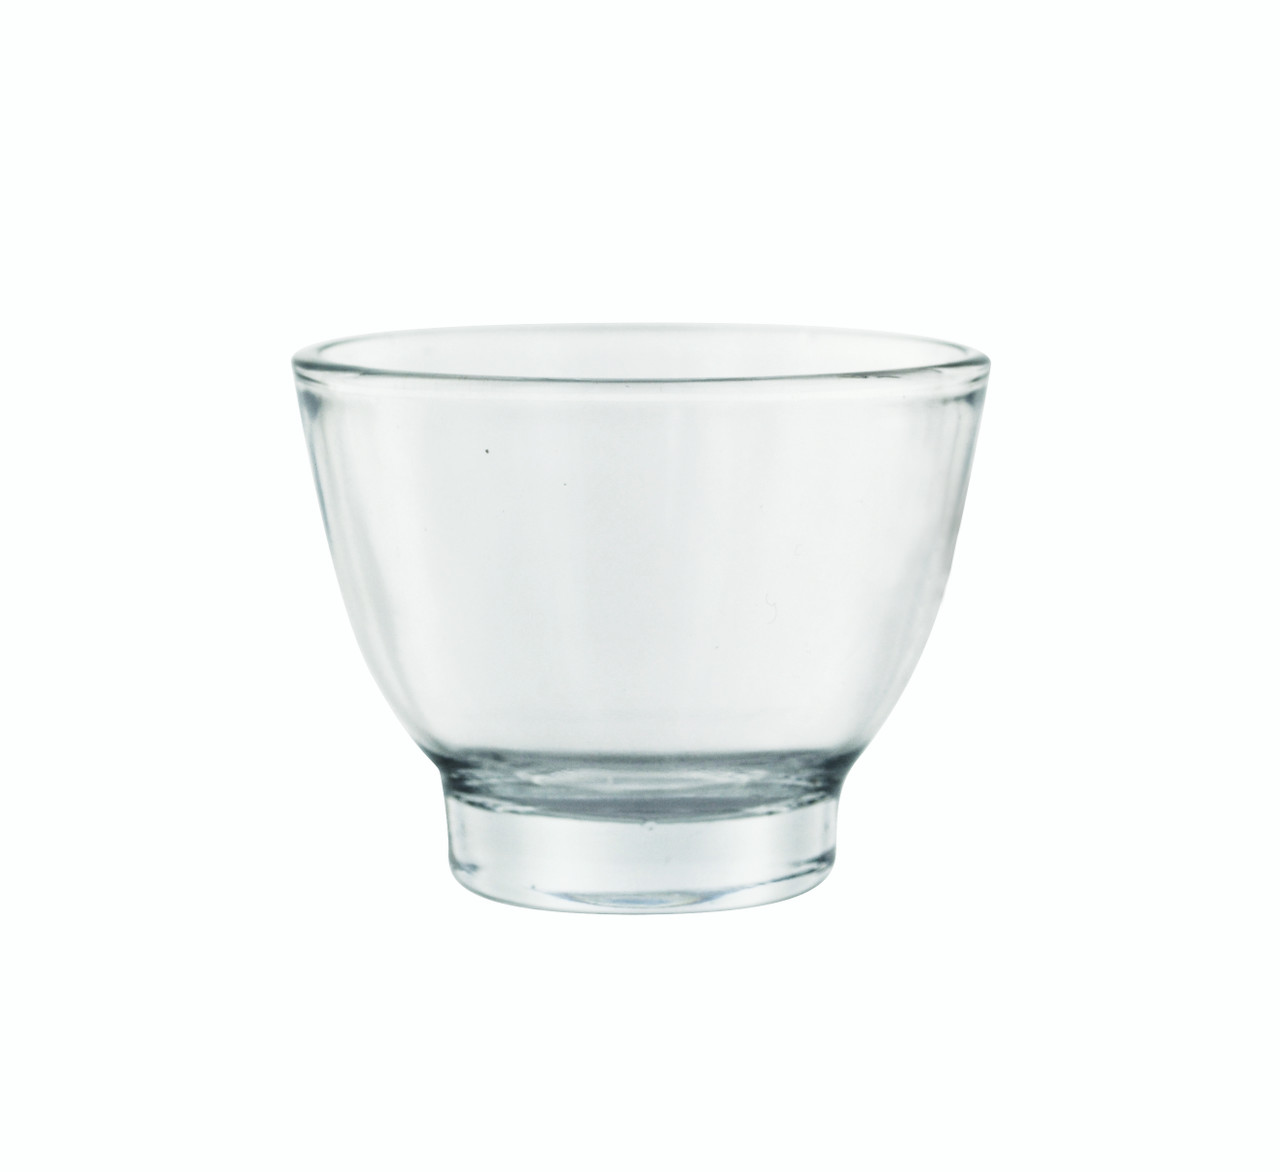 Rondo Shooter Glass -1.5oz Dia:2.52in H:1.95in